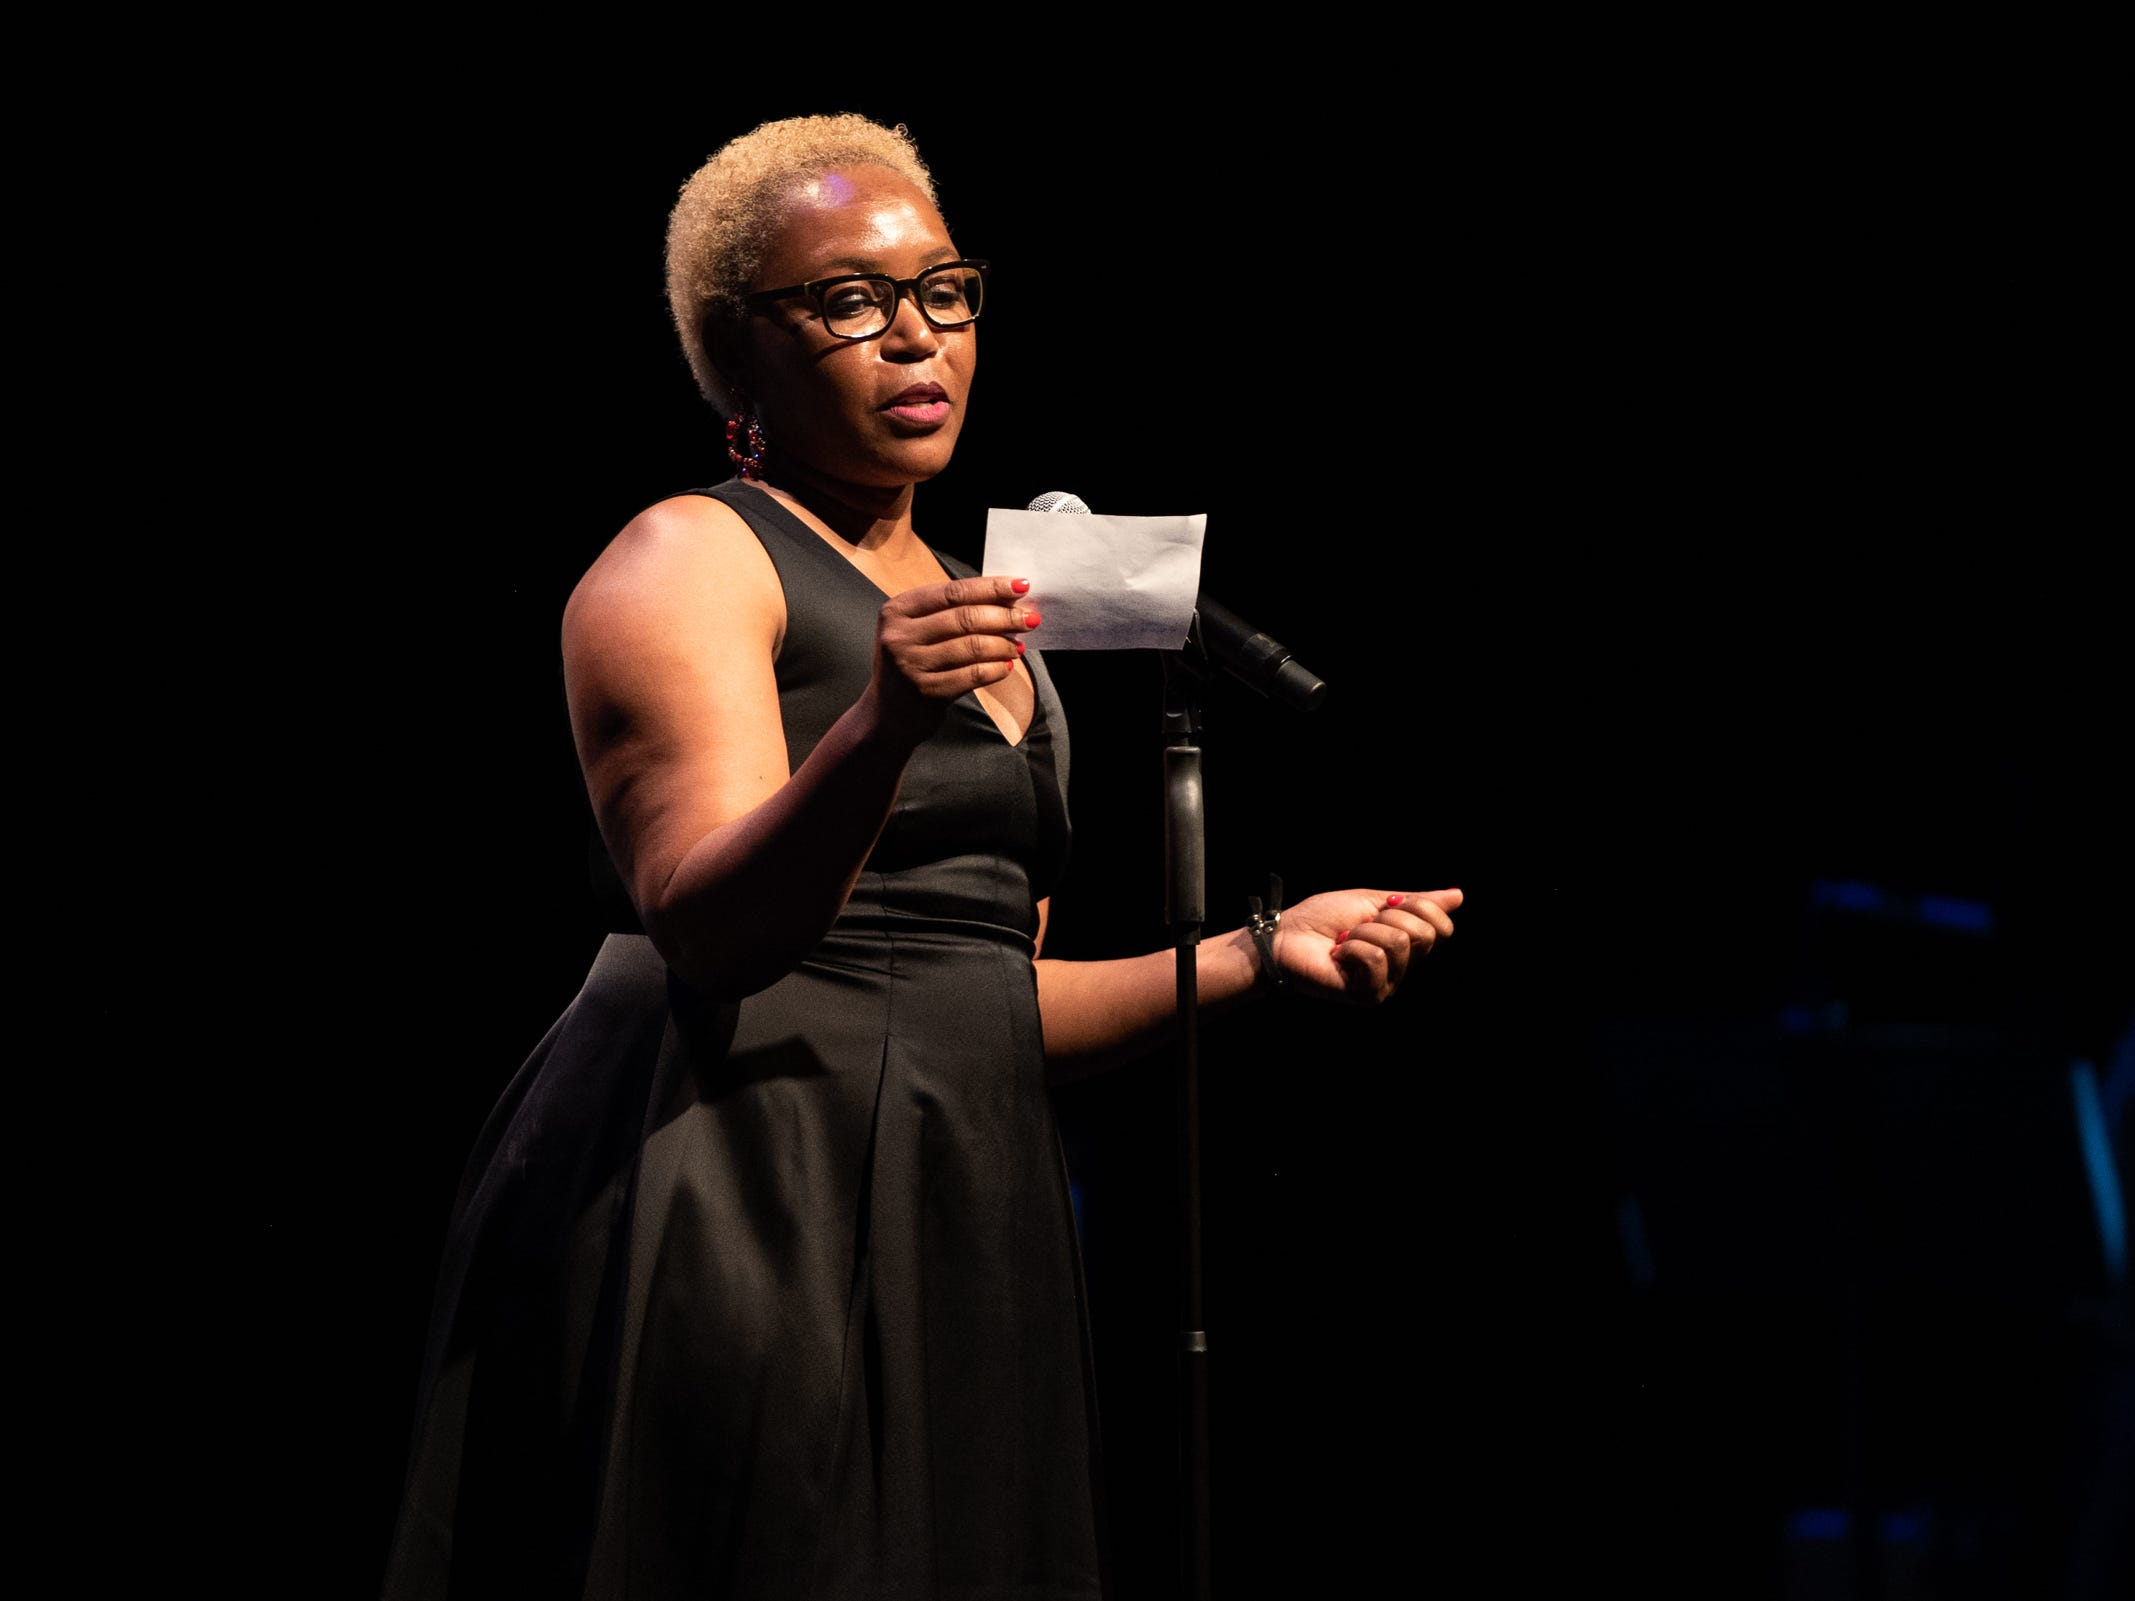 """Kanu Jacobsen tells her tale of romance during """"Arizona Storytellers: Romance, or Not"""" at the Scottsdale Center for Performing Arts on Wednesday, Feb. 13, 2019."""